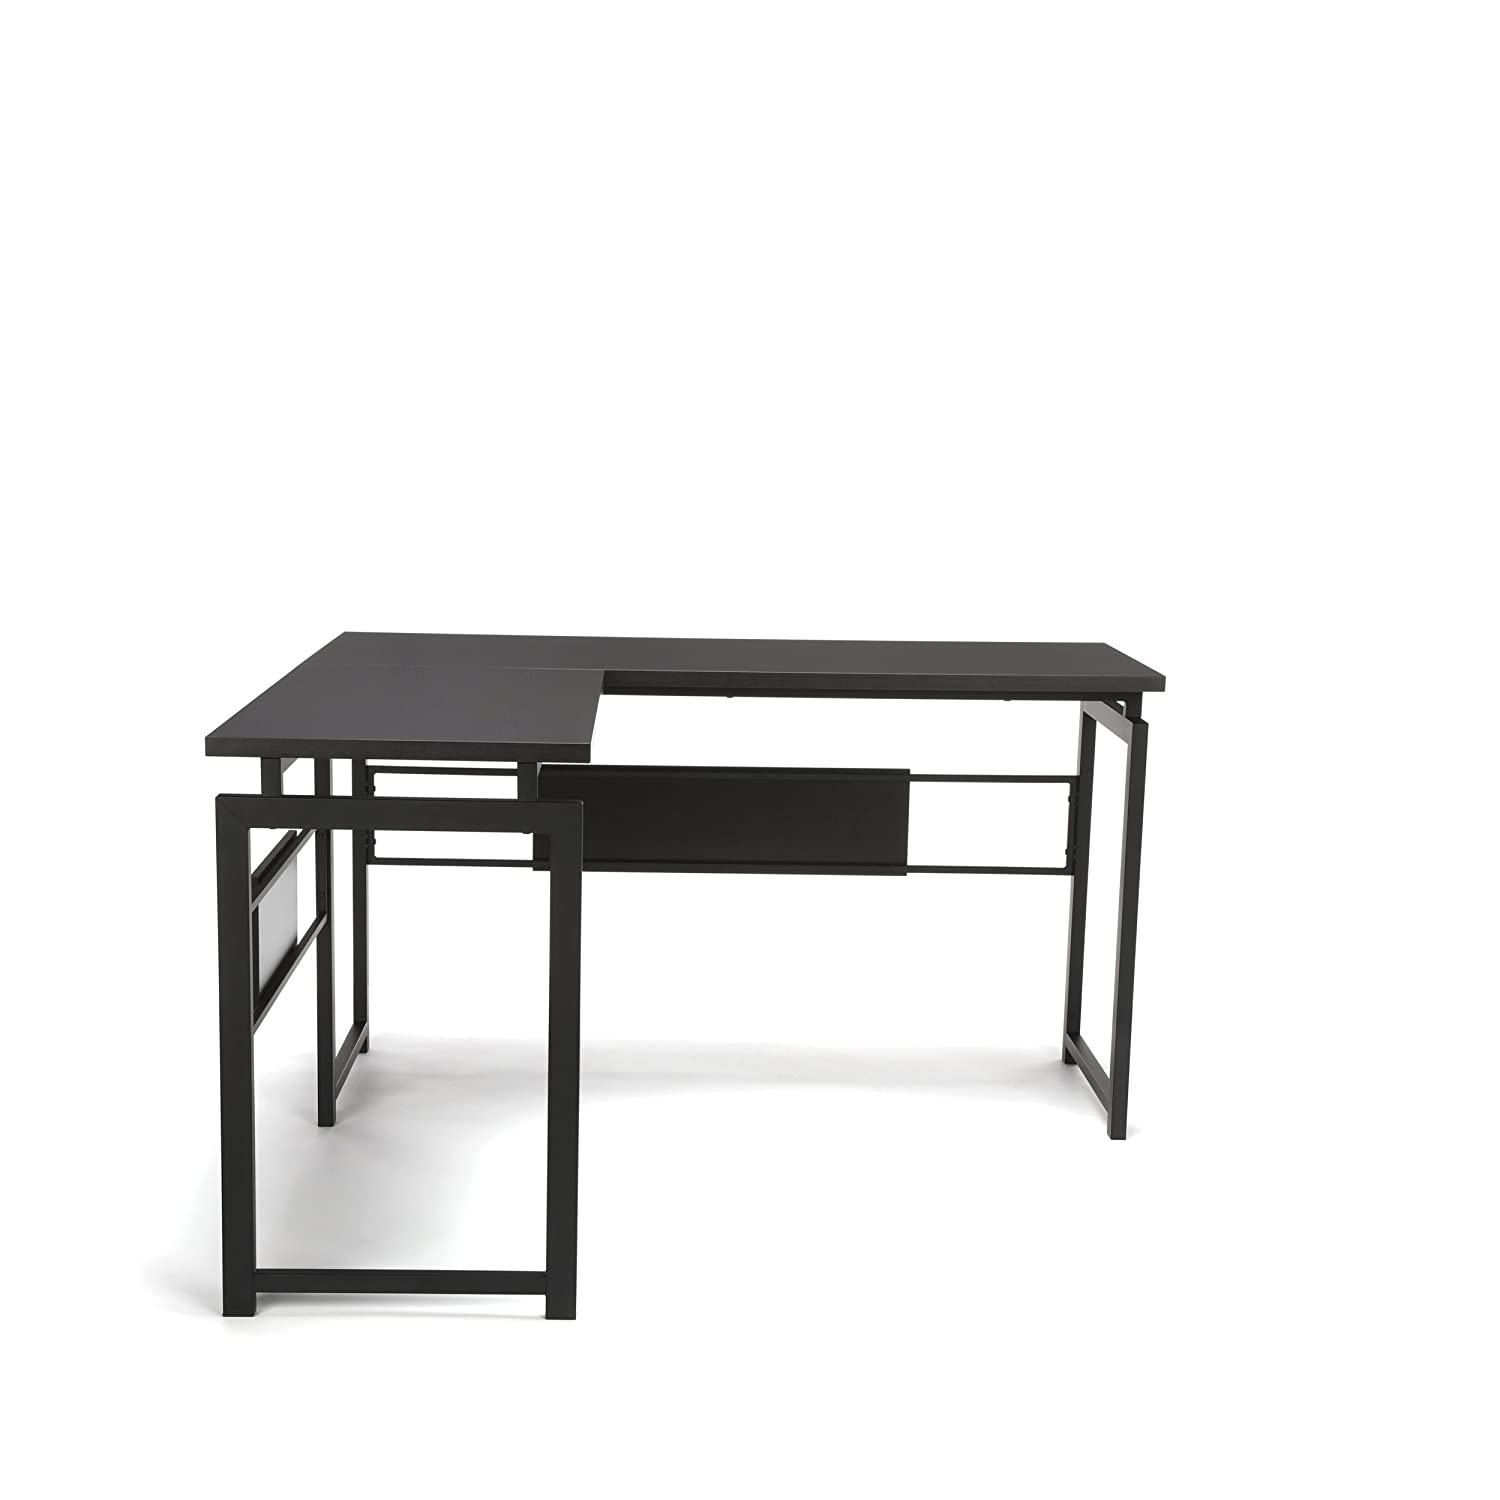 OFM L-Shaped Desk – Corner Computer Desk with Metal Legs, Black ESS-1020-BLK